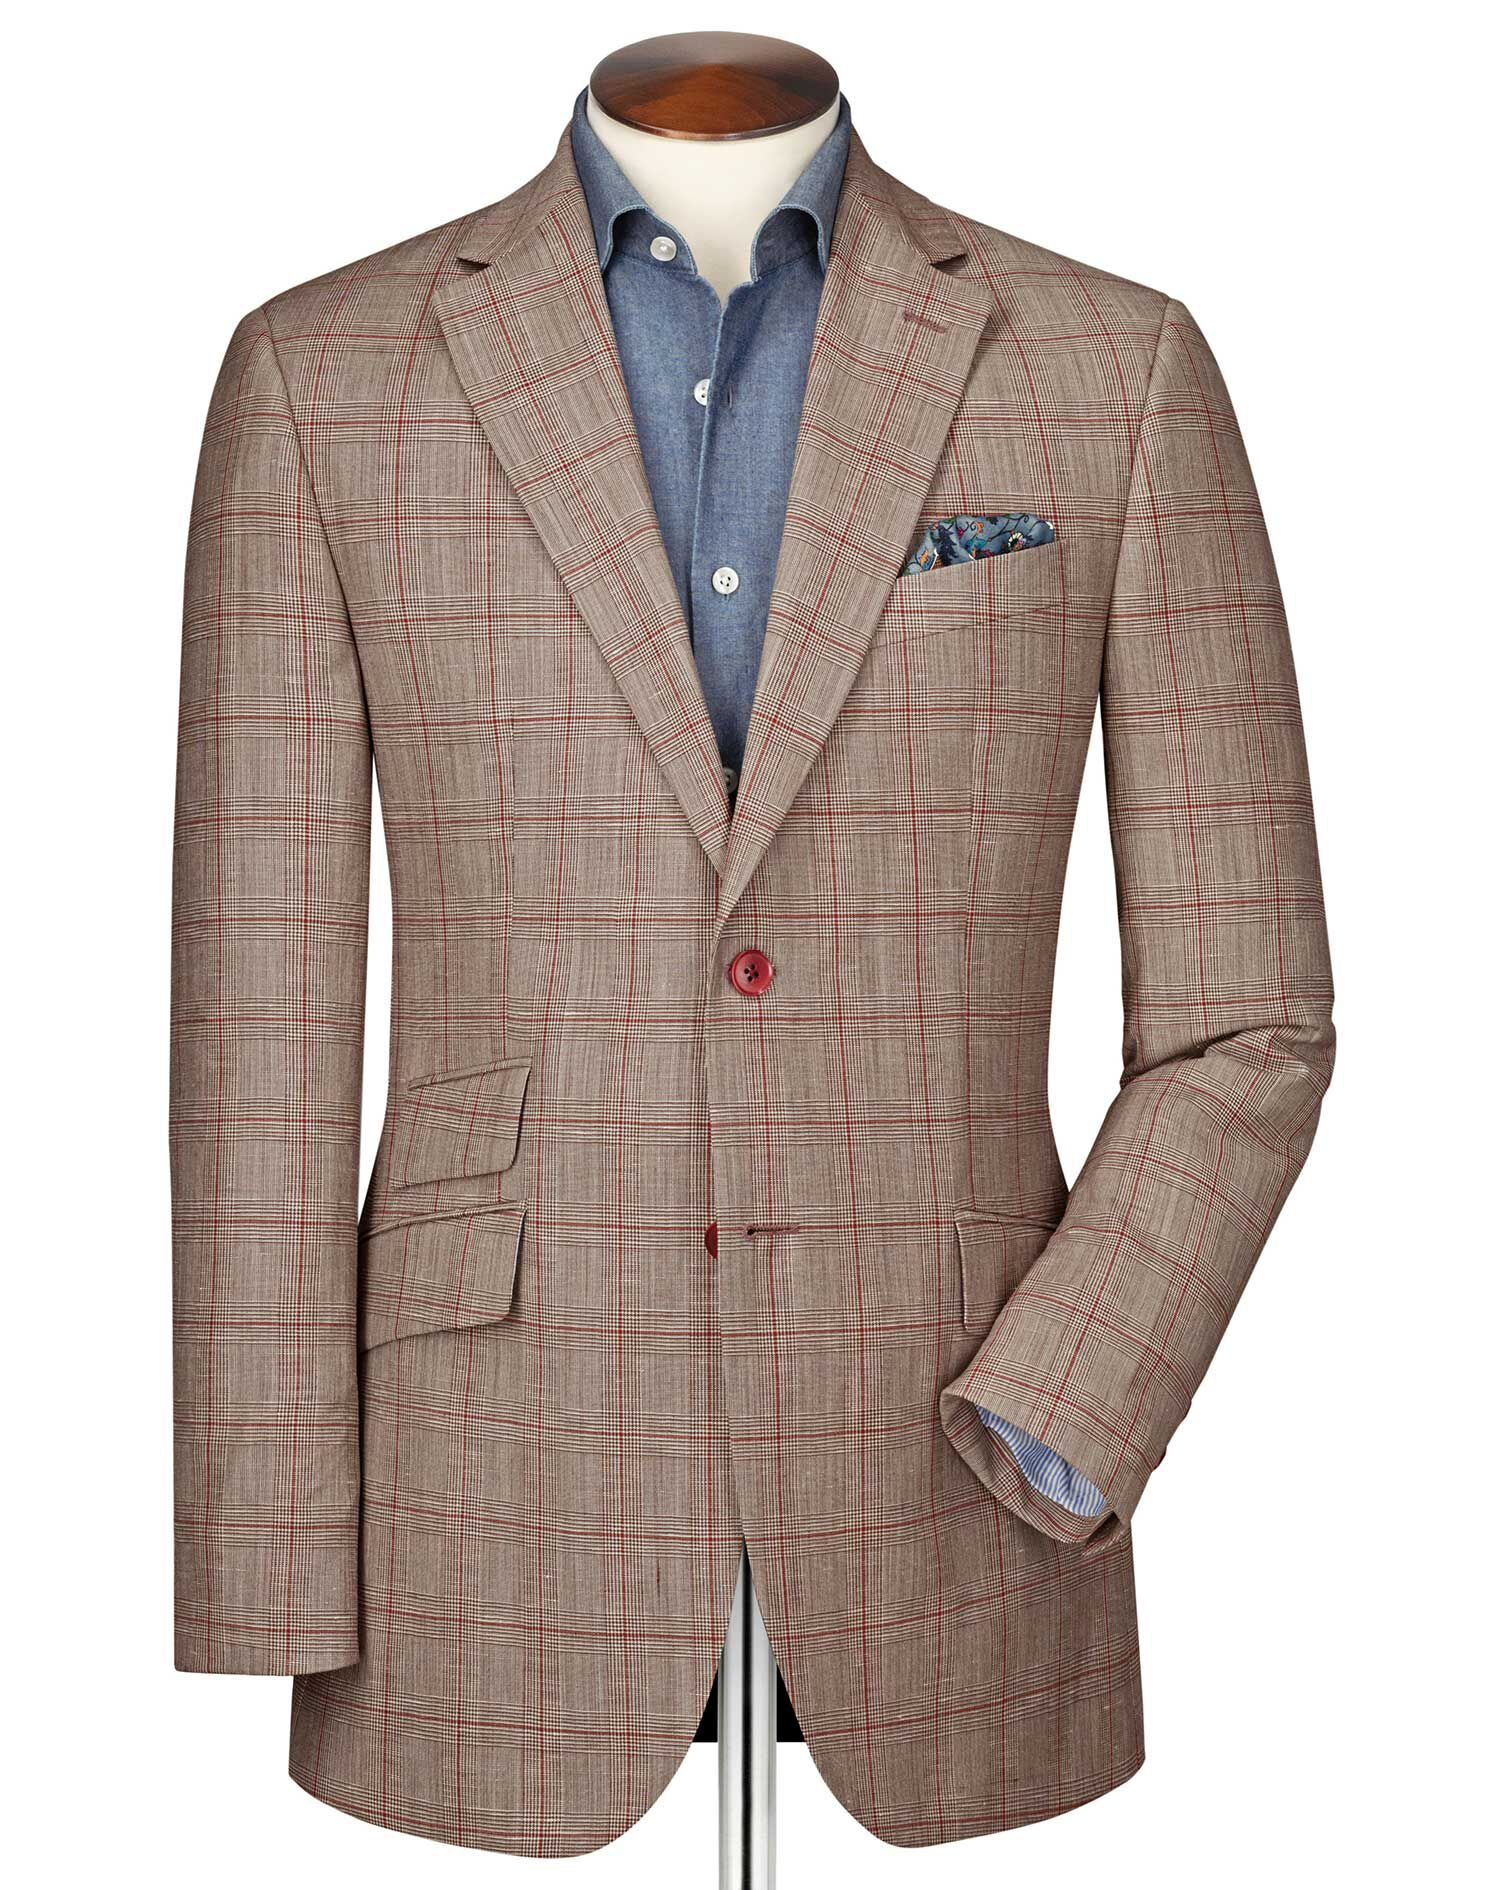 Slim Fit Red Checkered Linen Mix Linen Jacket Size 46 by Charles Tyrwhitt